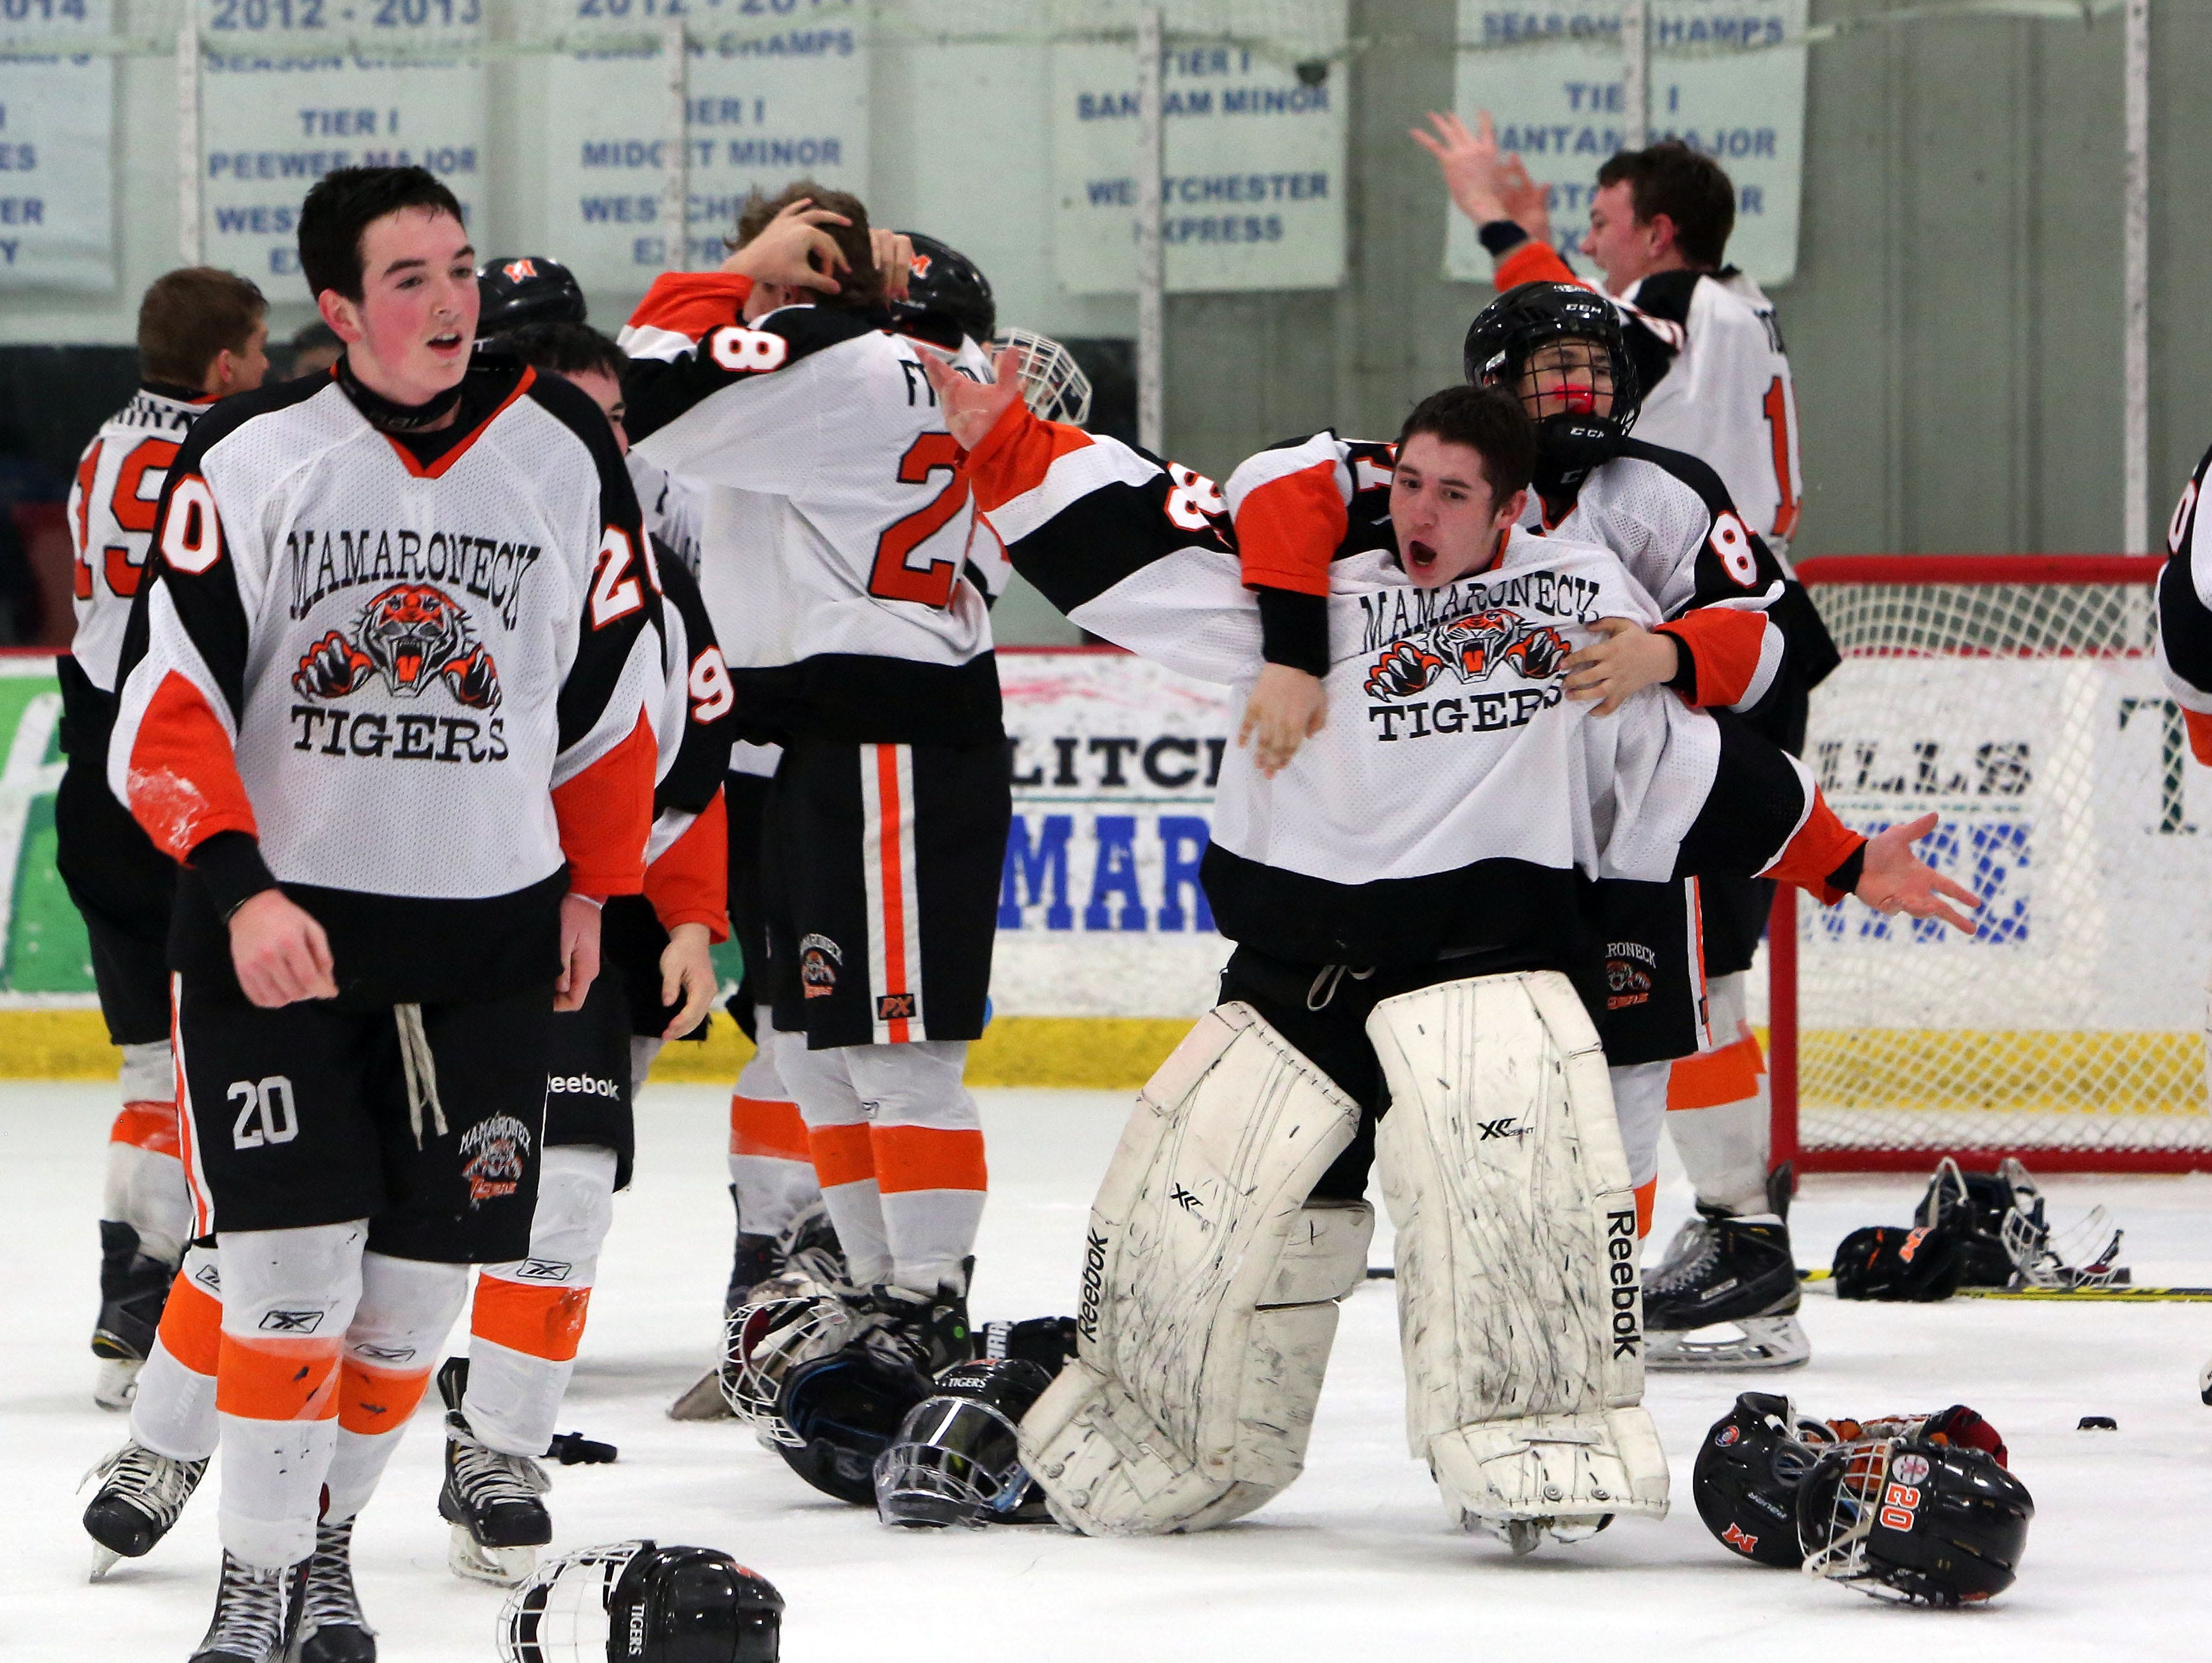 Mamaroneck players celebrate their 5-1 victory over Suffern to win the Section 1 championship hockey game at The Brewster Sports Arena Feb. 26, 2016.